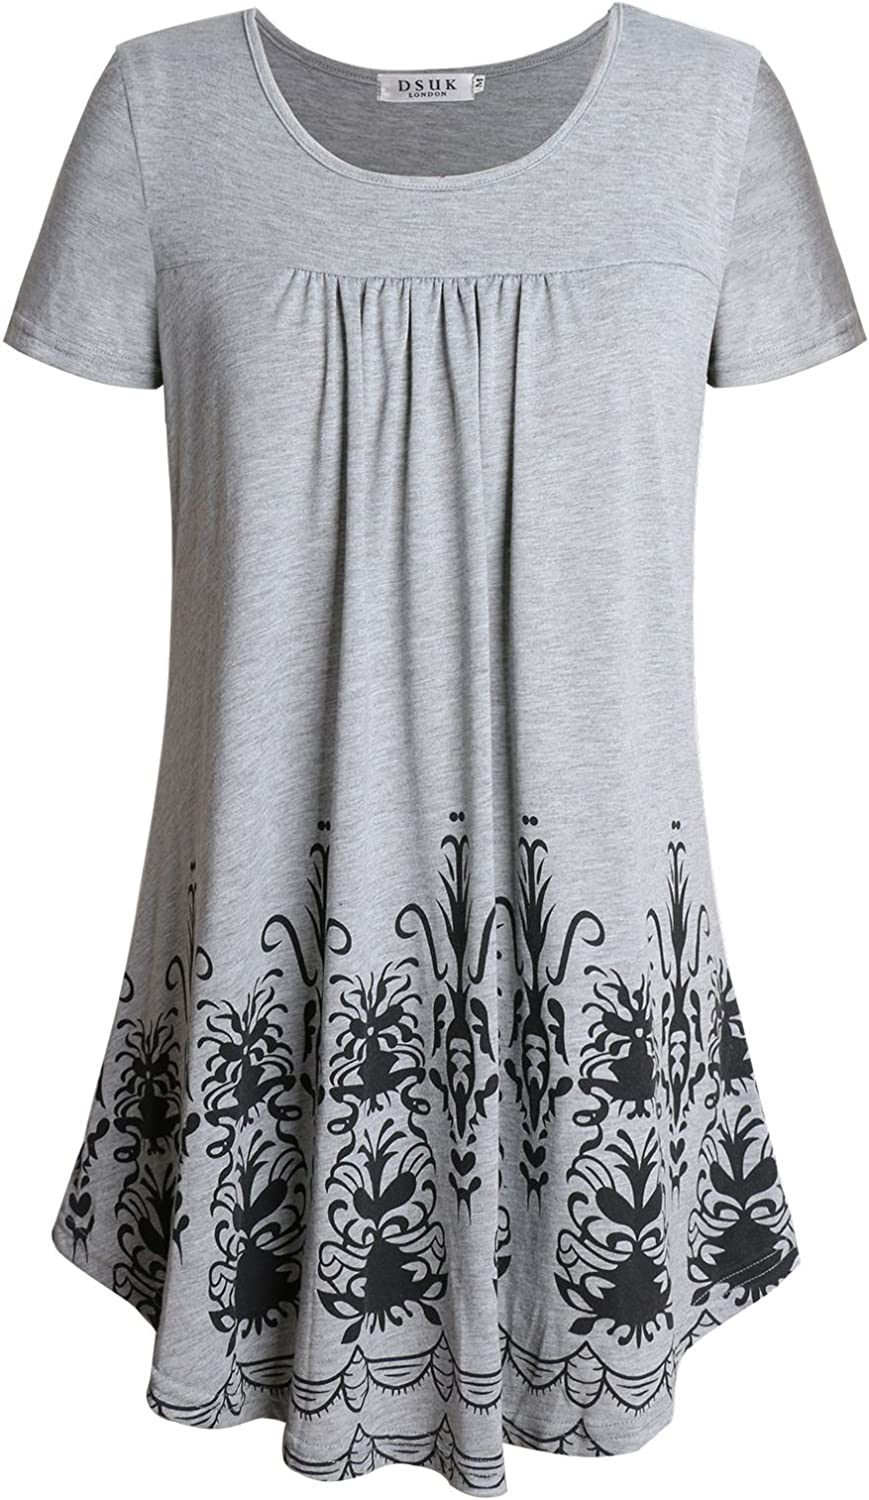 DSUK Women's Round Neck Short Sleeve Casual Floral Pleated Loose Fit Tunic Tops